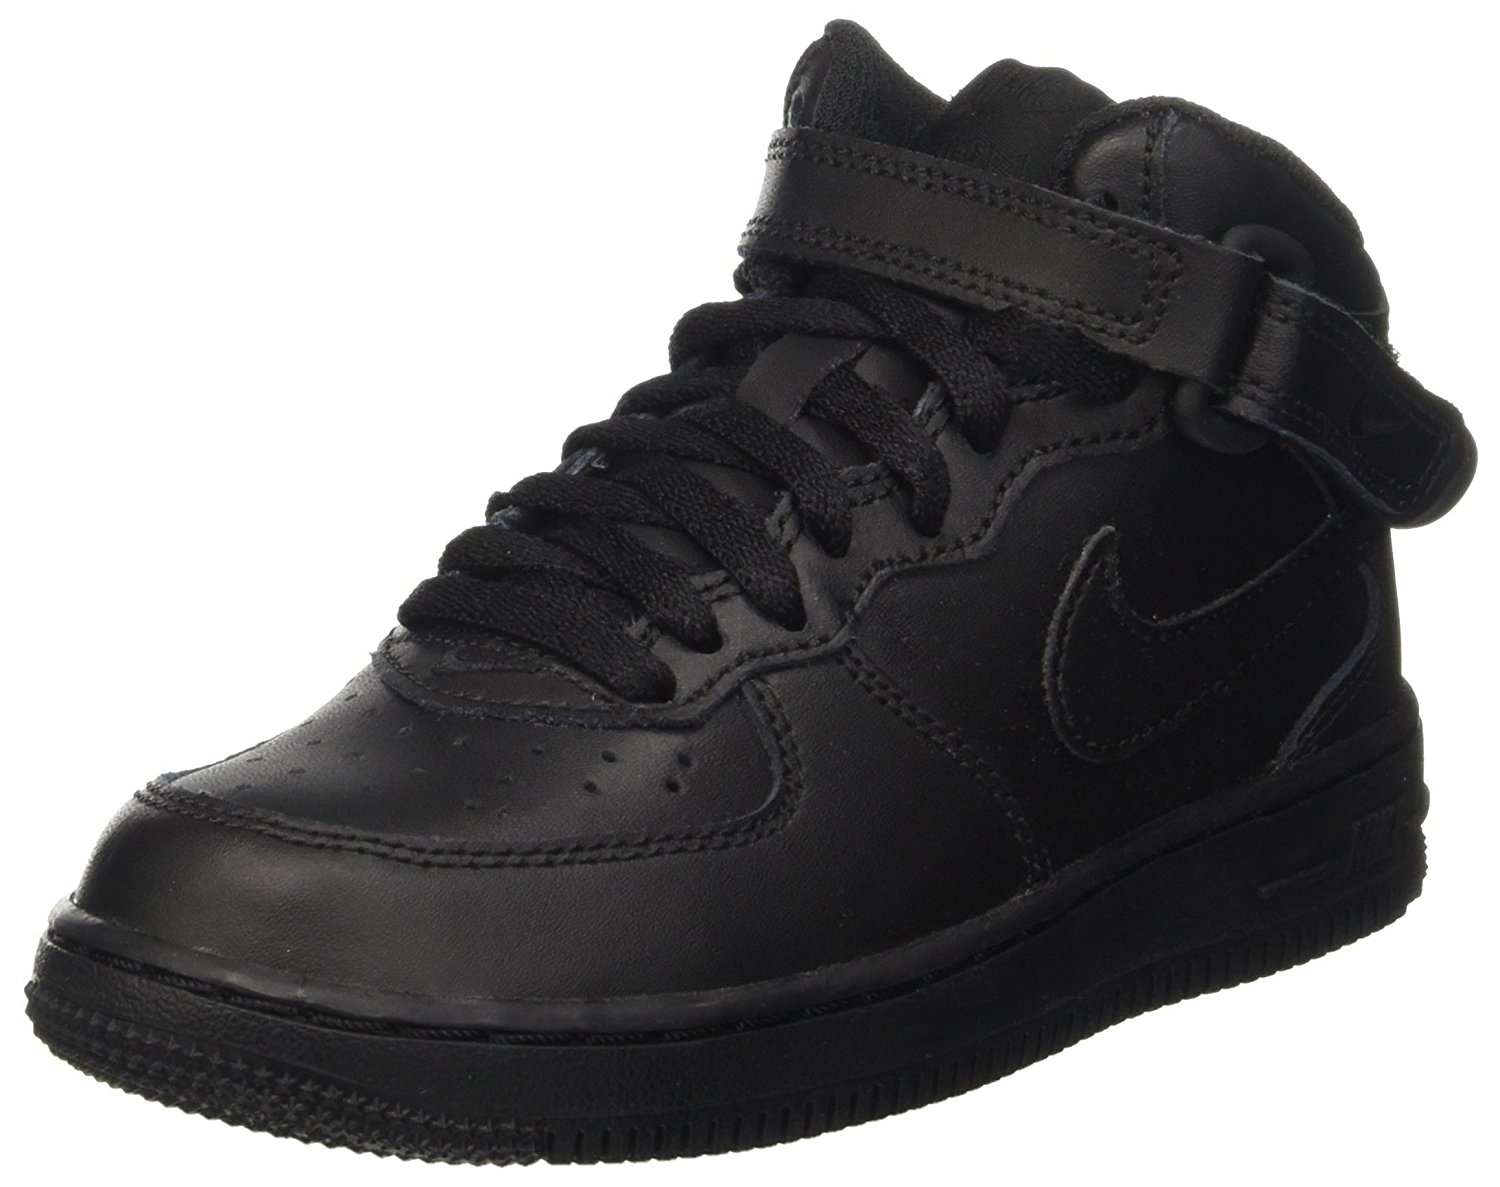 Nike Boy's Air Force 1 Mid Basketball Shoes